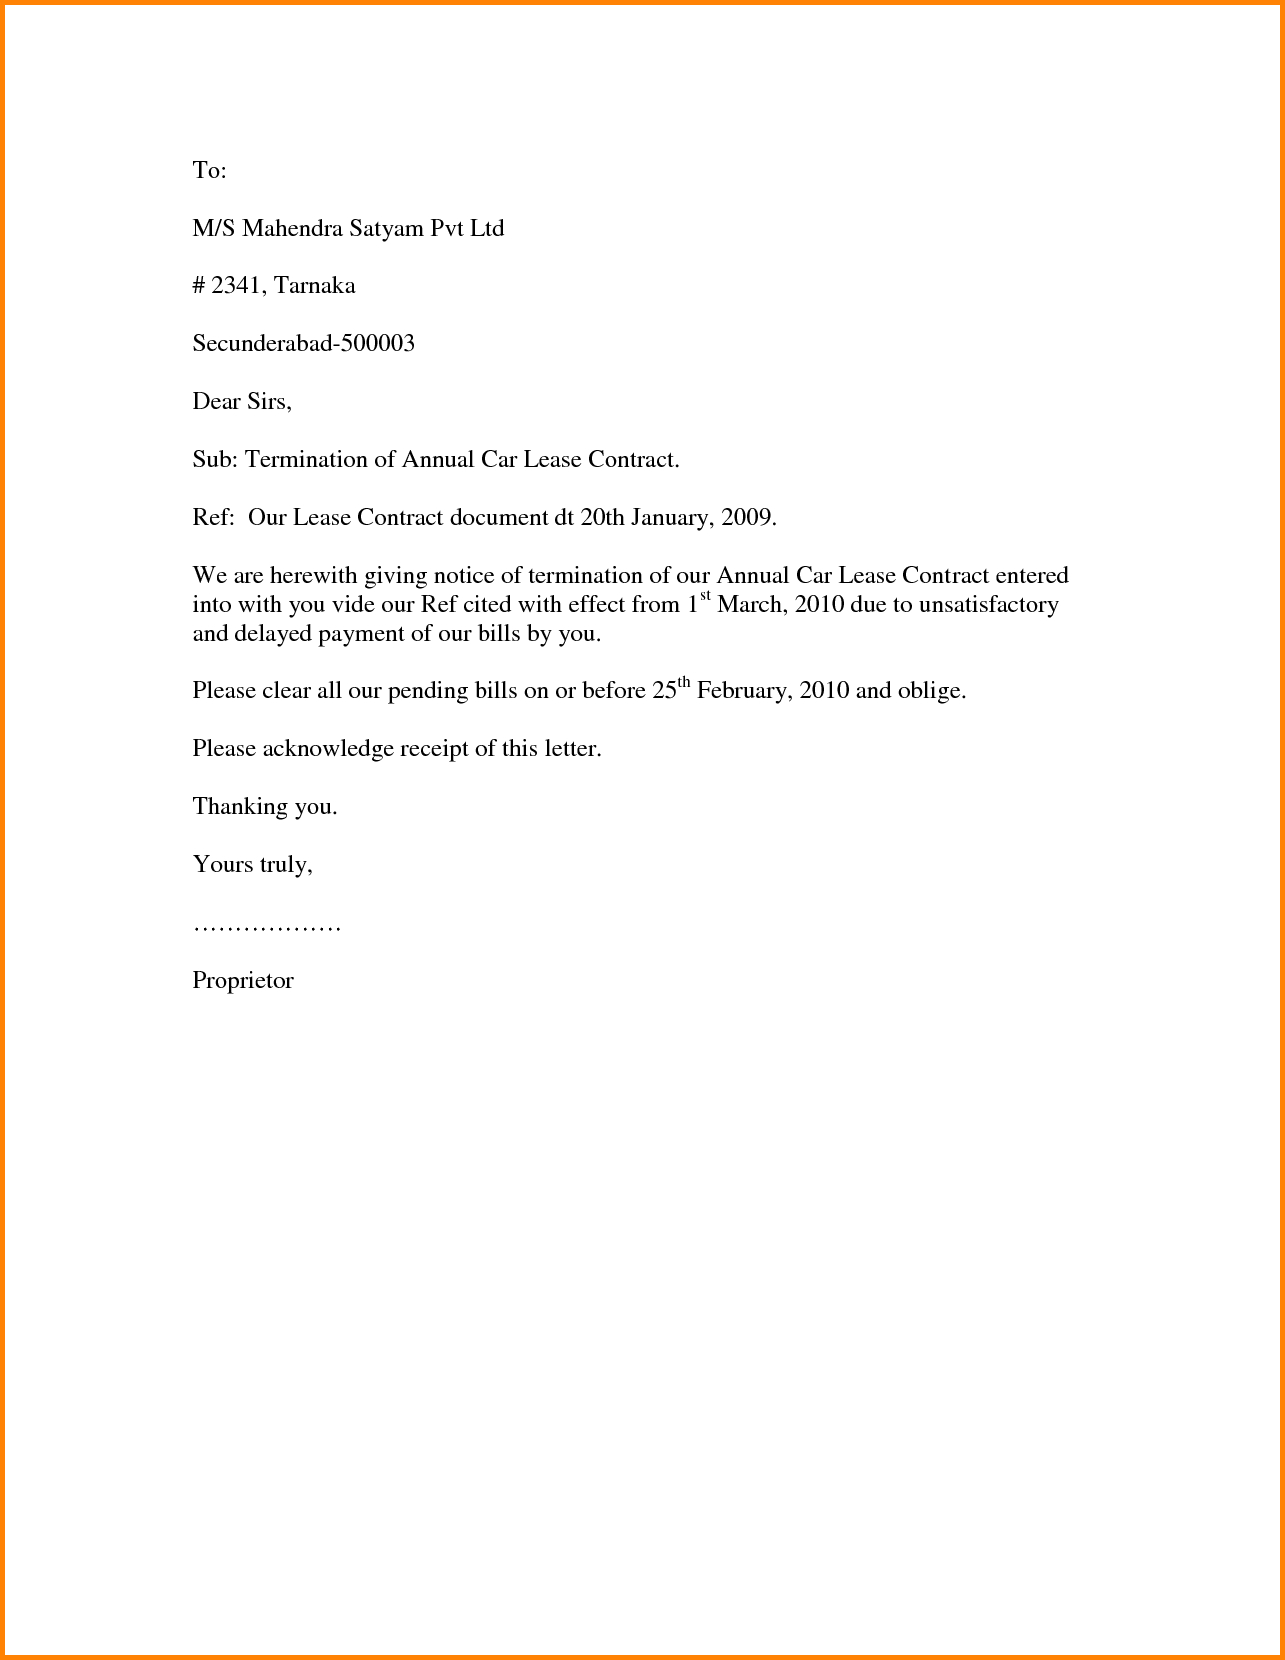 end of lease letter template example-Letter Template To End A Contract Copy Contract Letter Work Sample 14-o